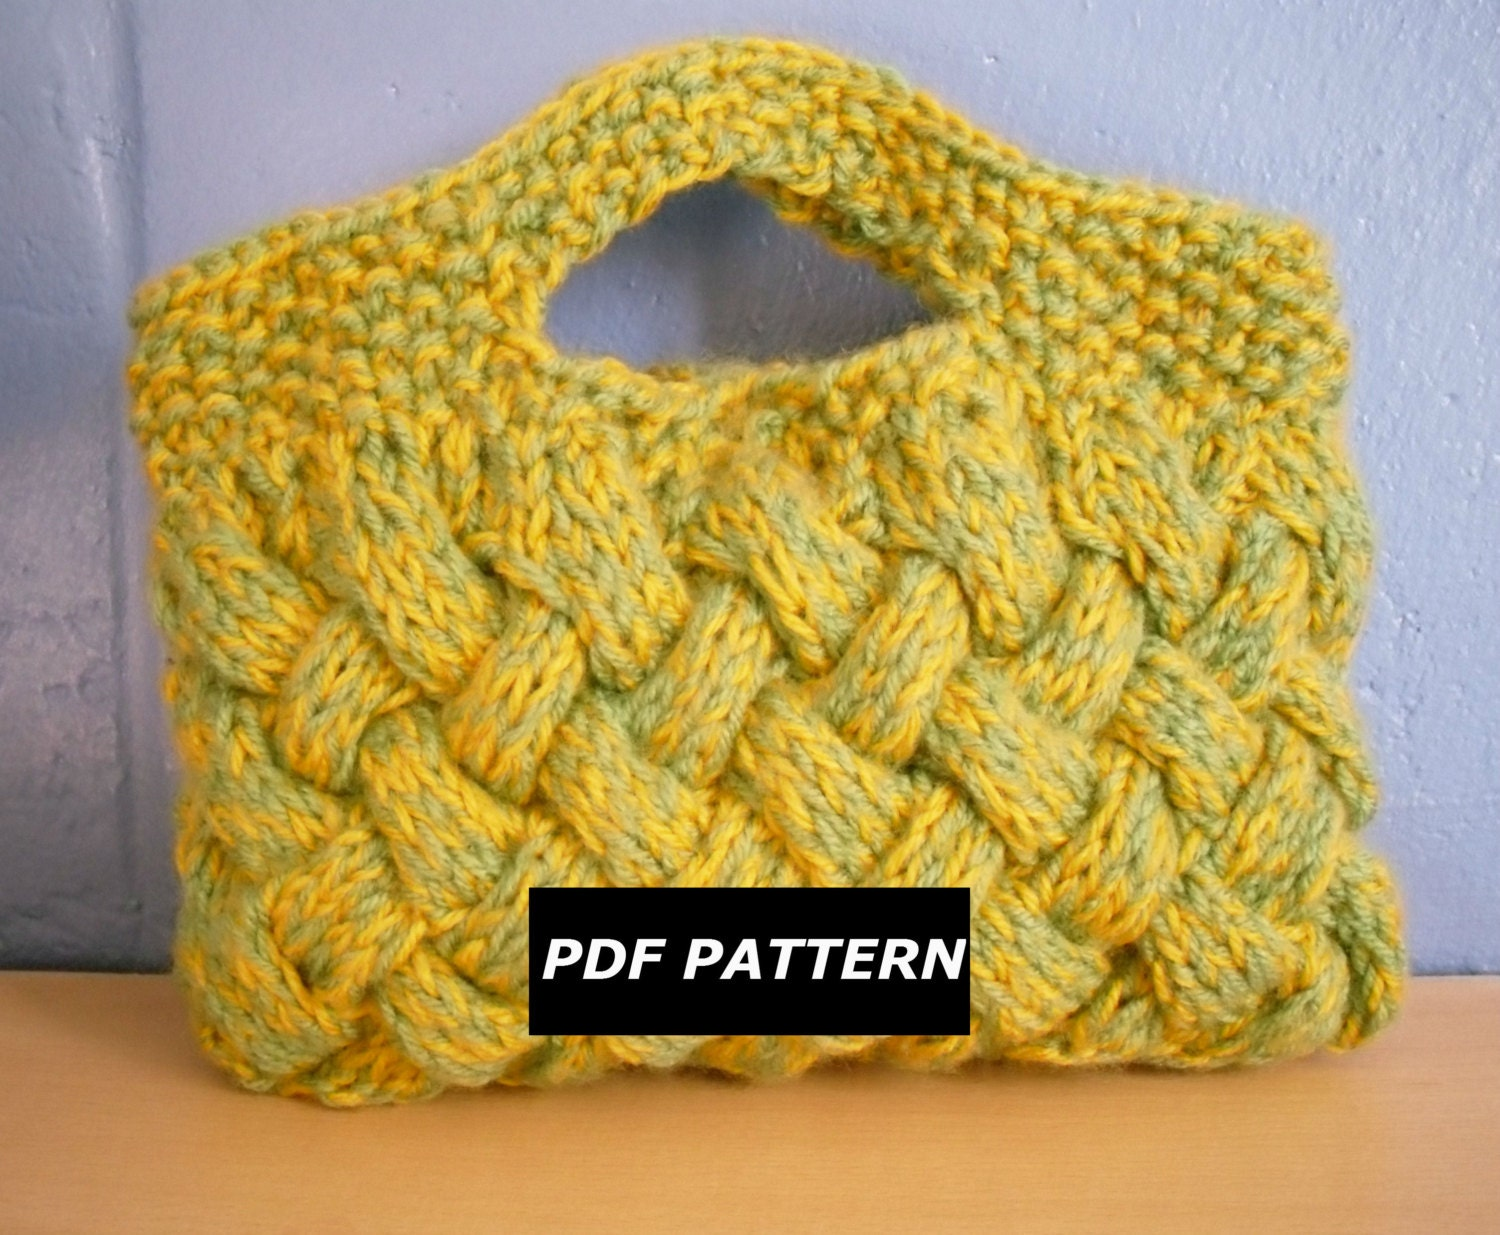 Knitting Pattern Woven Cable Clutch Bag